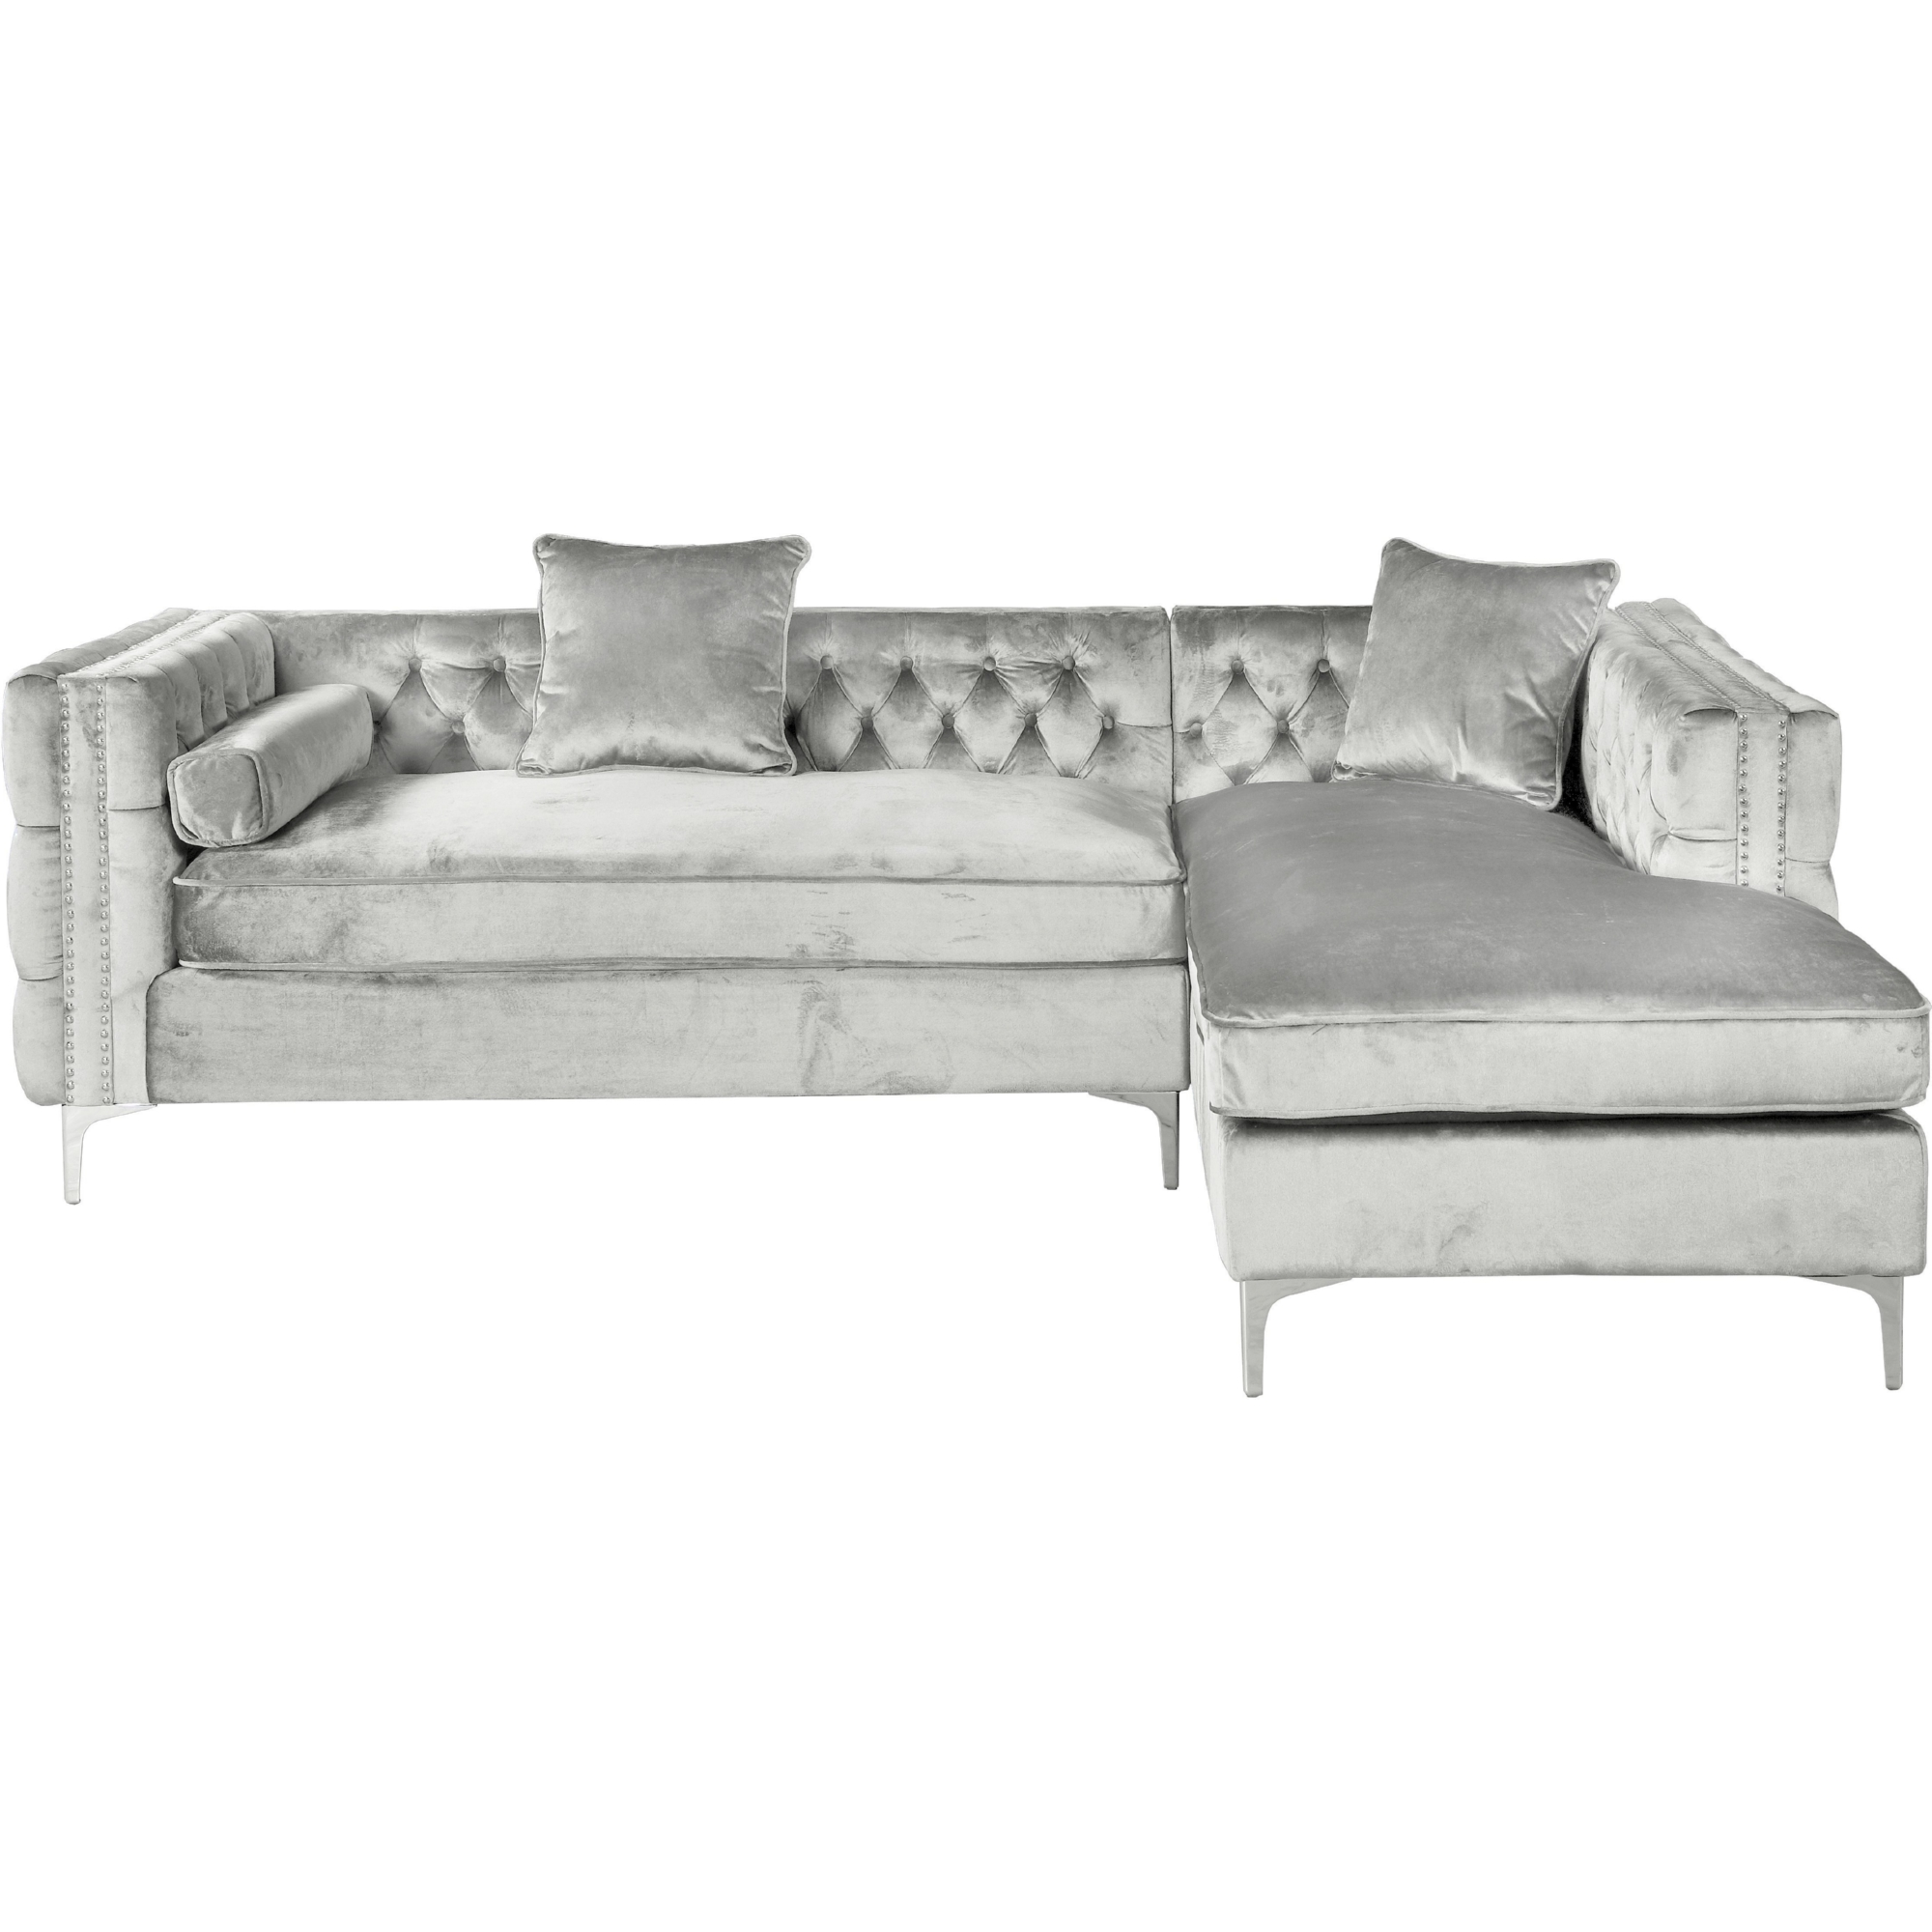 gray velvet sofa with nailheads latest set designs for living room silver sectional and grey couch mulberry ...